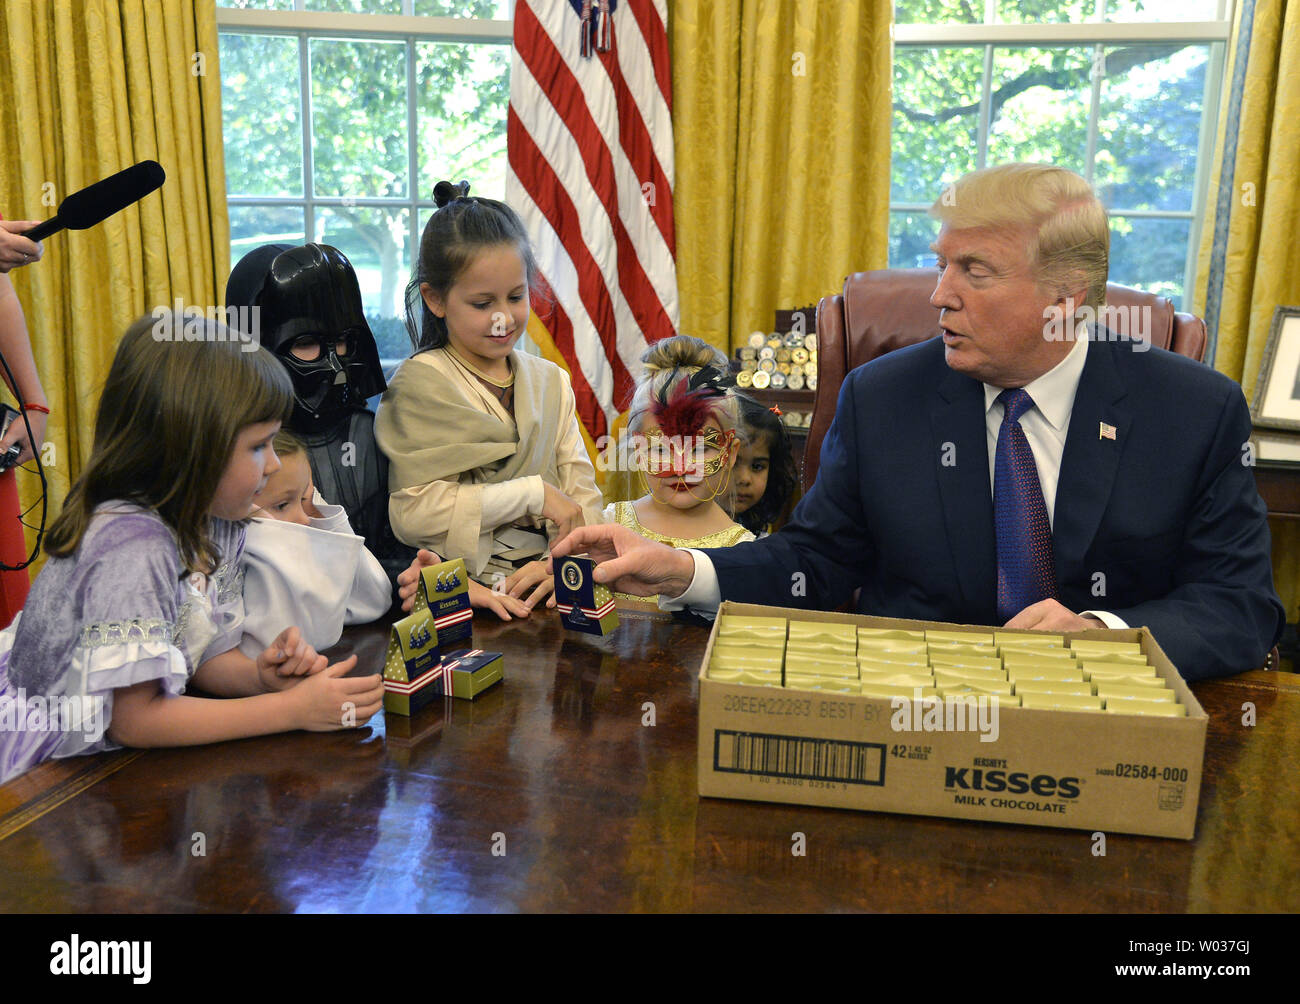 Don Titos Halloween October 27, 2020 President Donald Trump gives out candy with the presidential seal